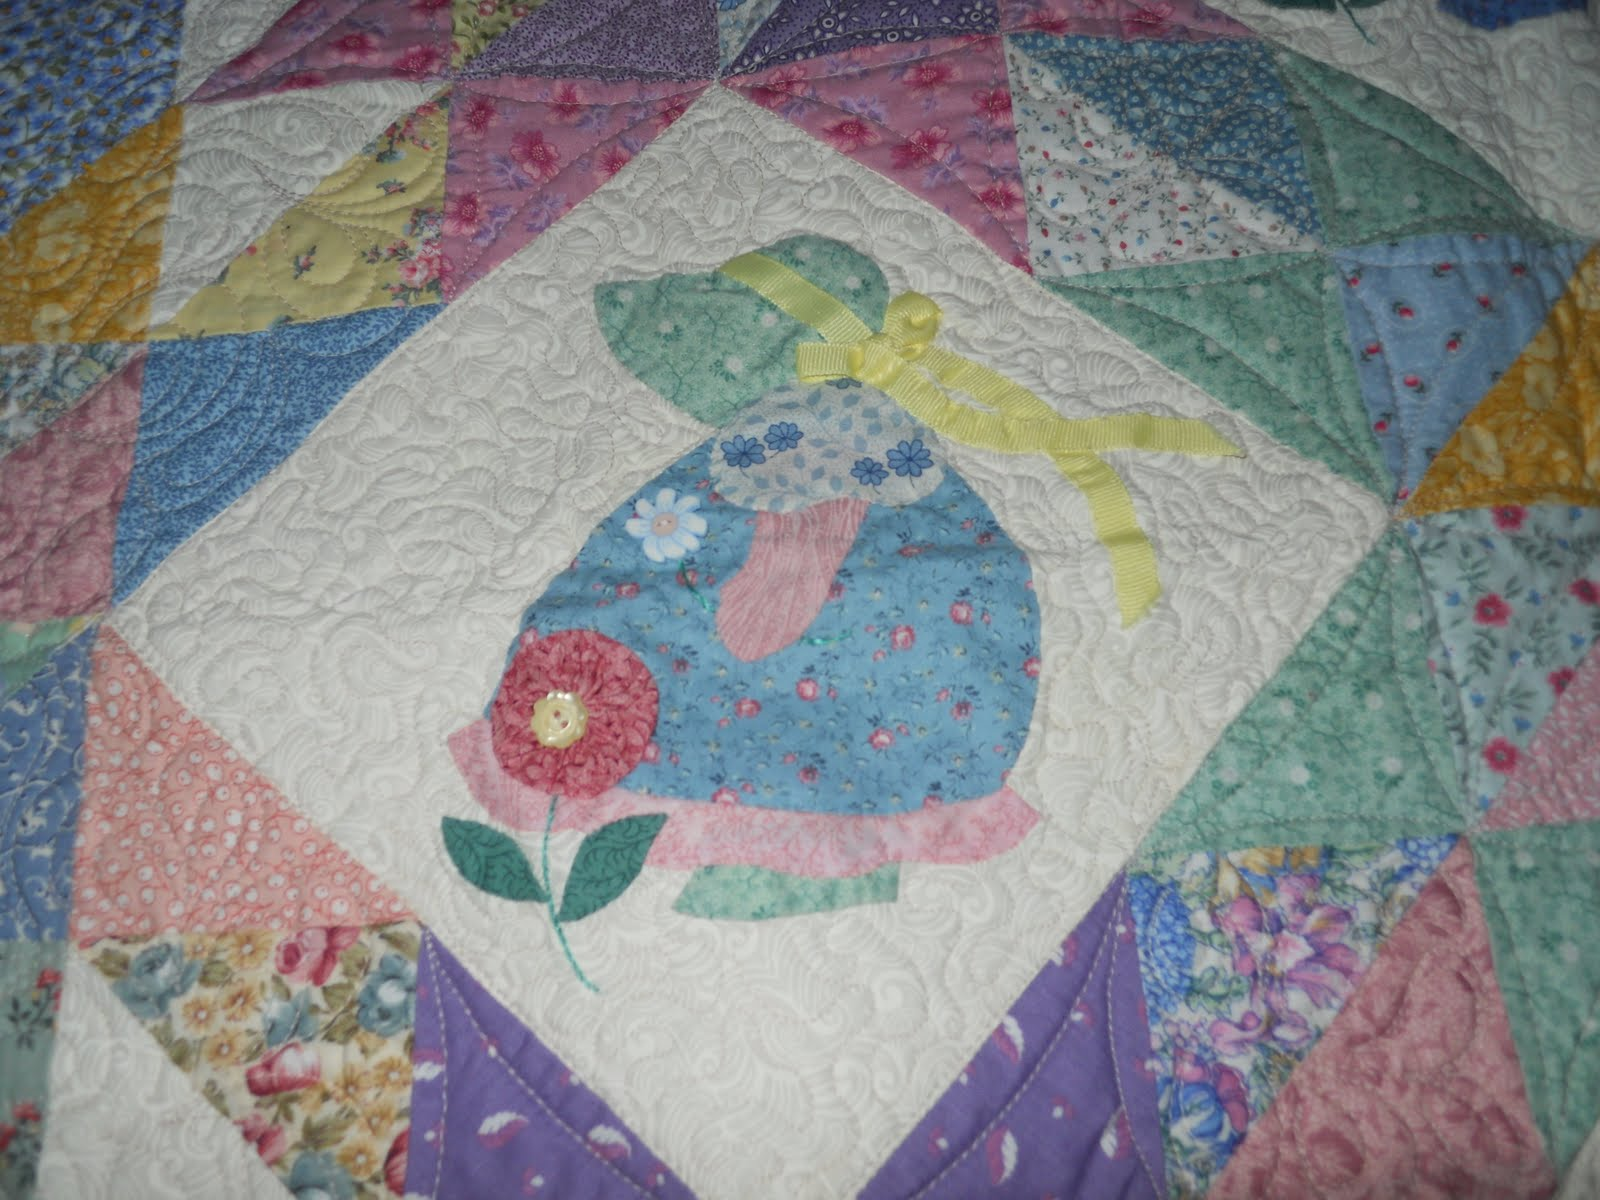 My Mom Quilted This: Sunbonnet Sue Quilt